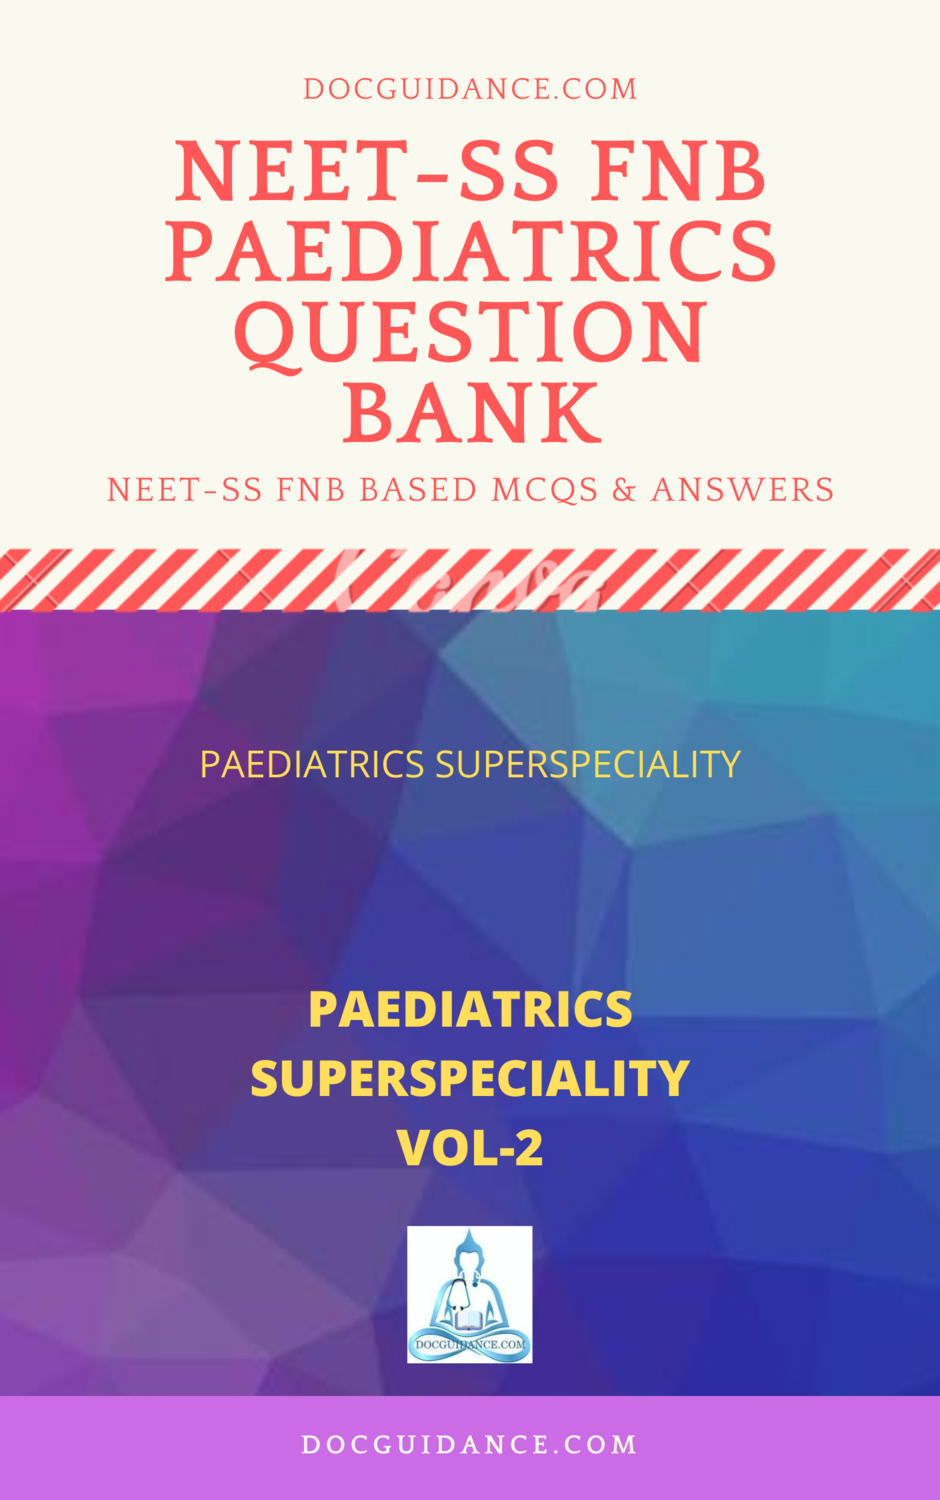 Paediatrics NEET-SS Question Bank vol-2